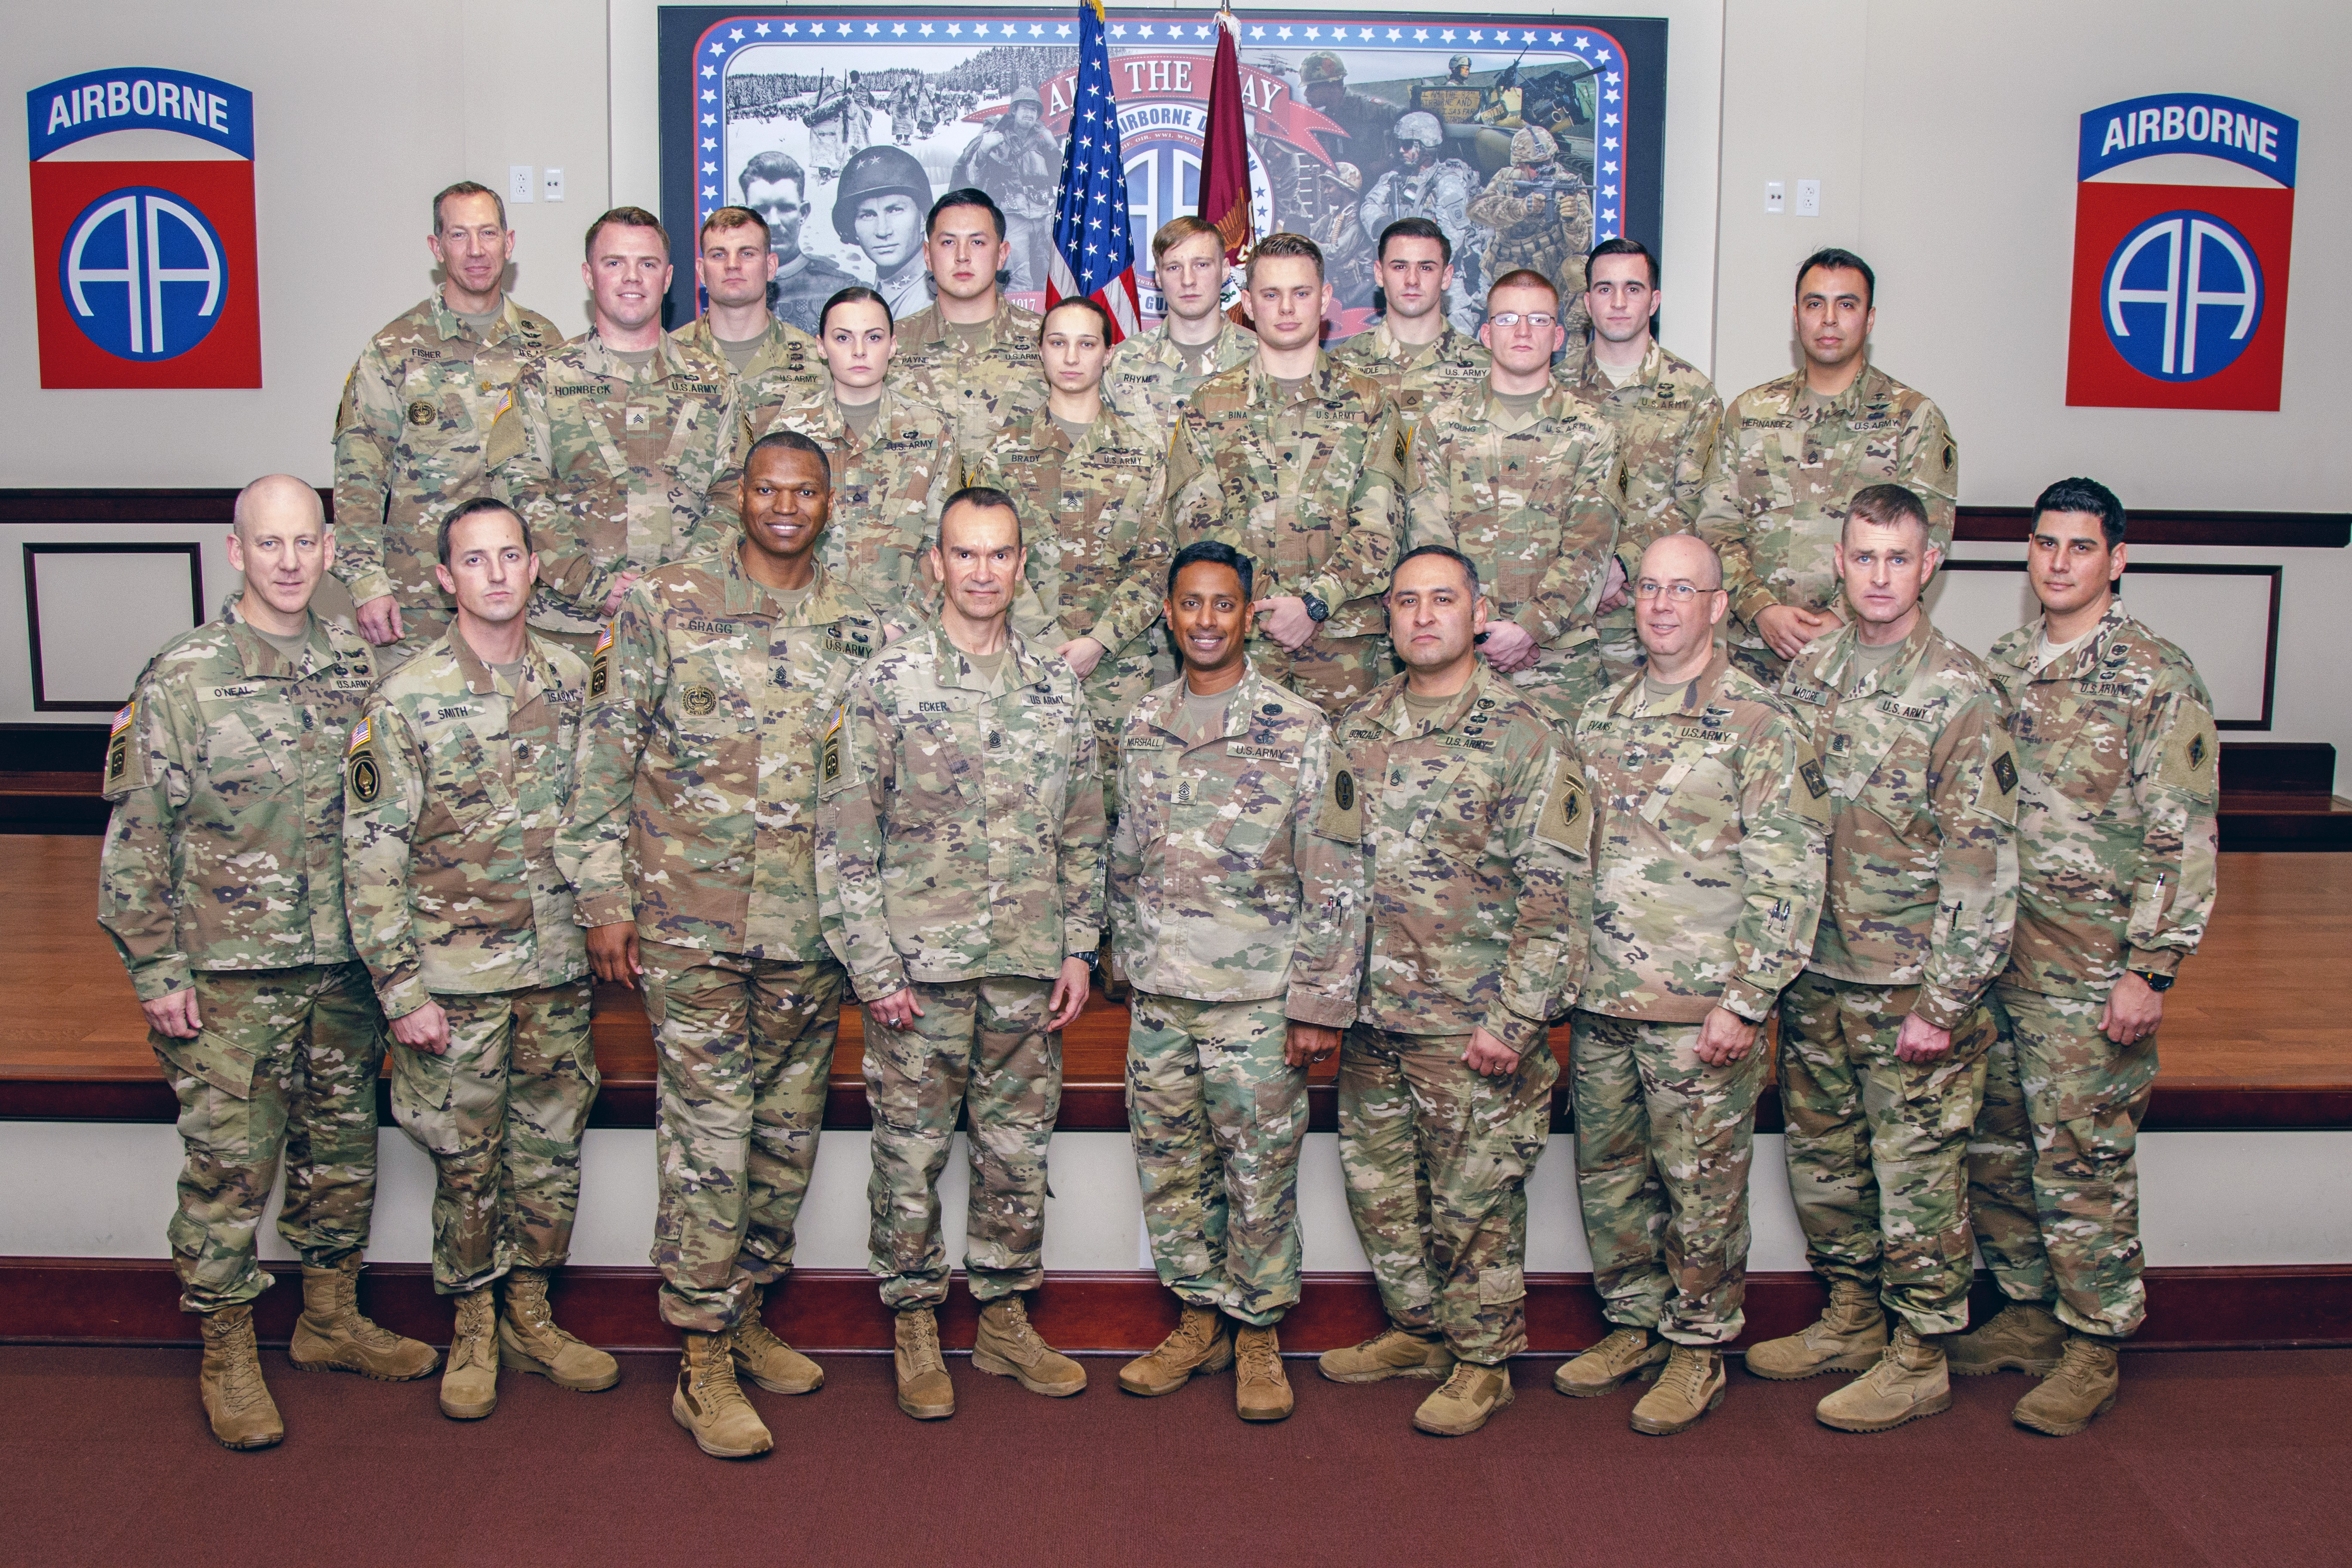 82nd airborne certifies first class of army s new expeditionary